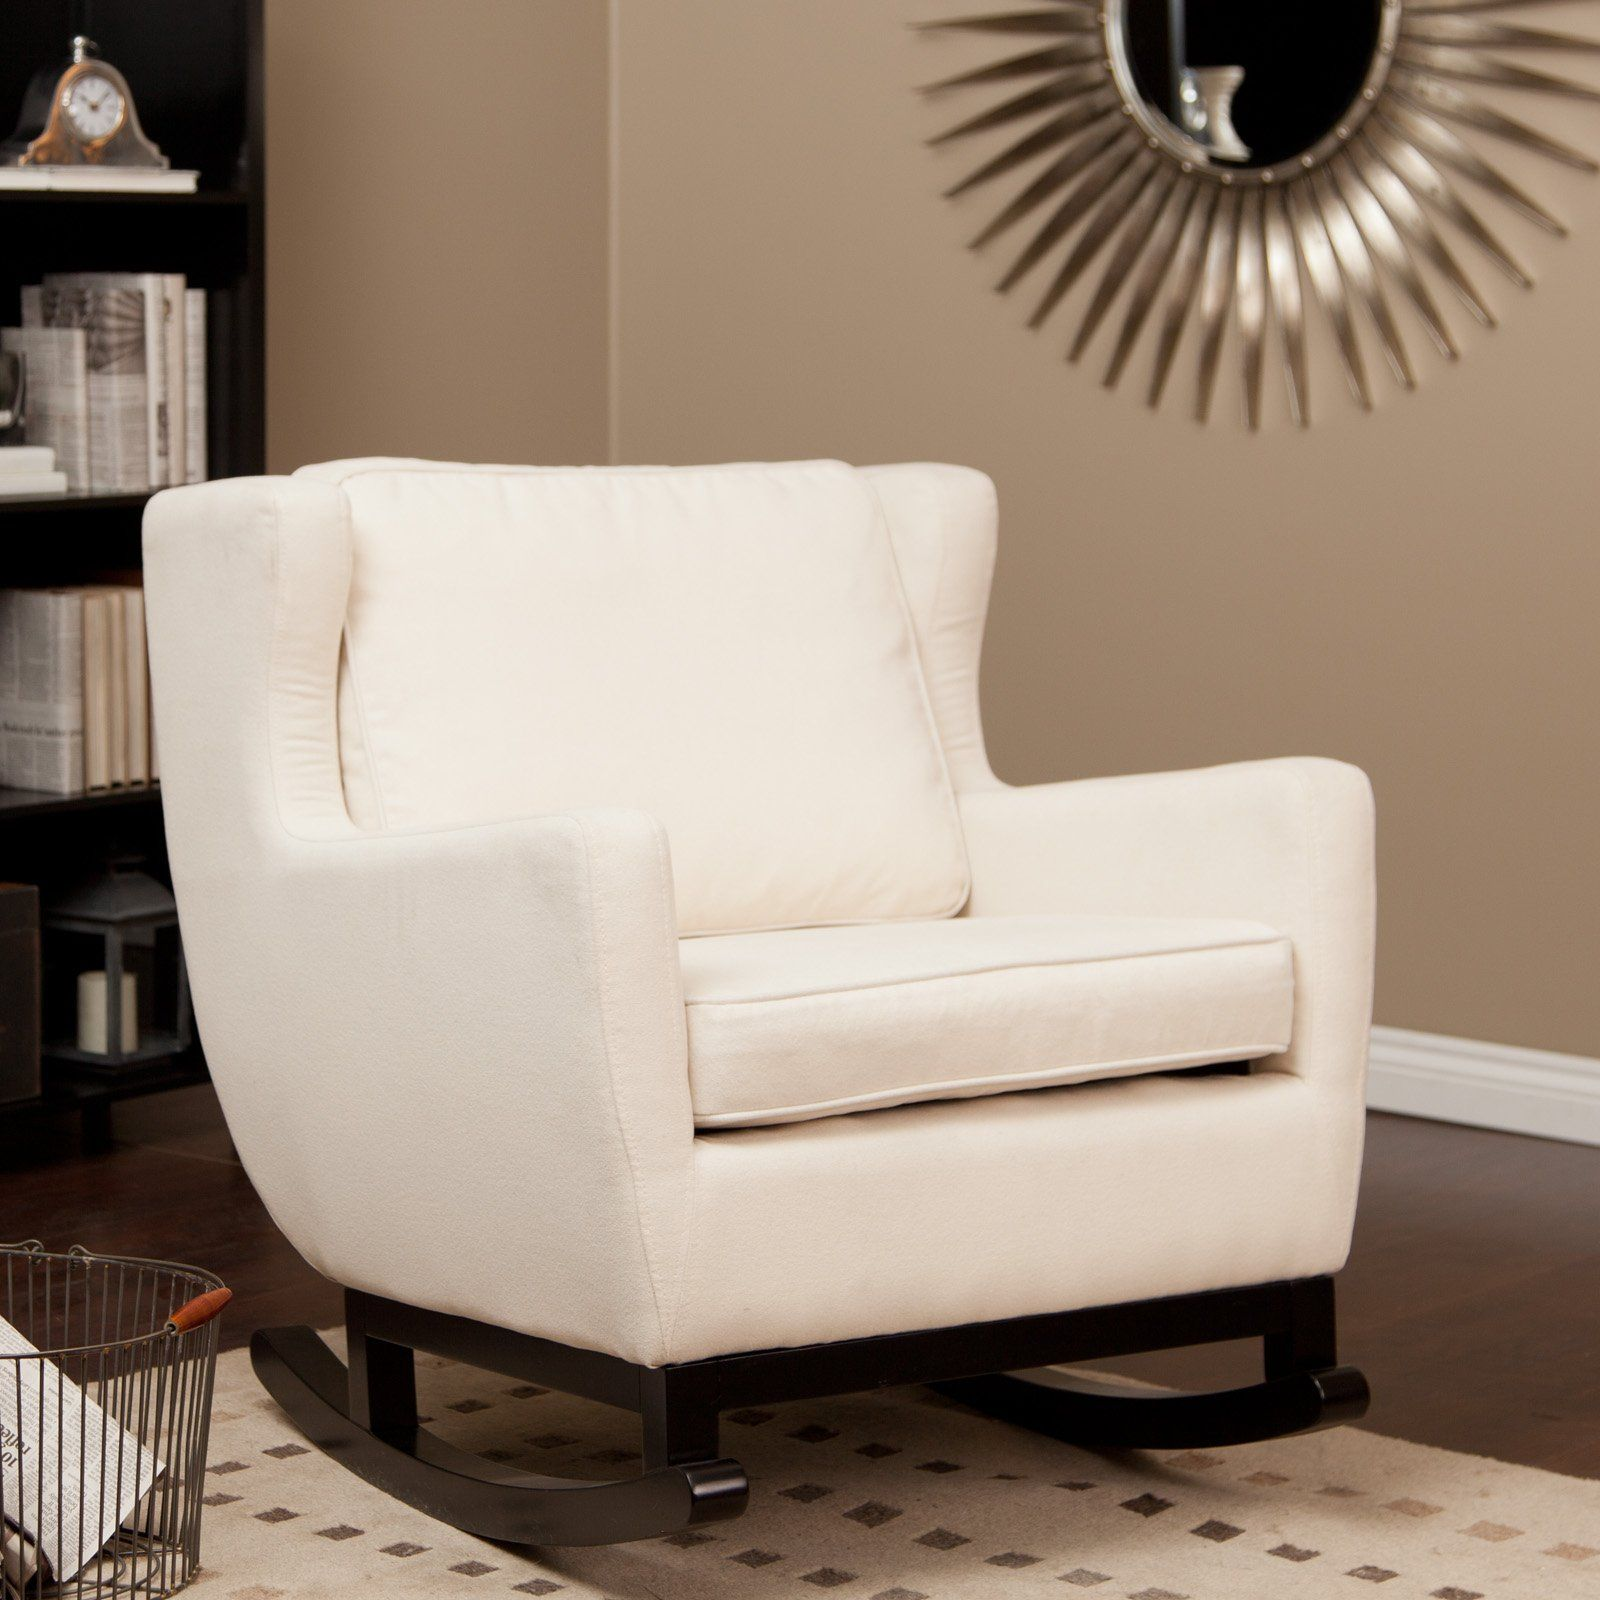 Belham Living Upholstered Rocking Chair   Cream   Indoor Rocking Chairs At  Hayneedle